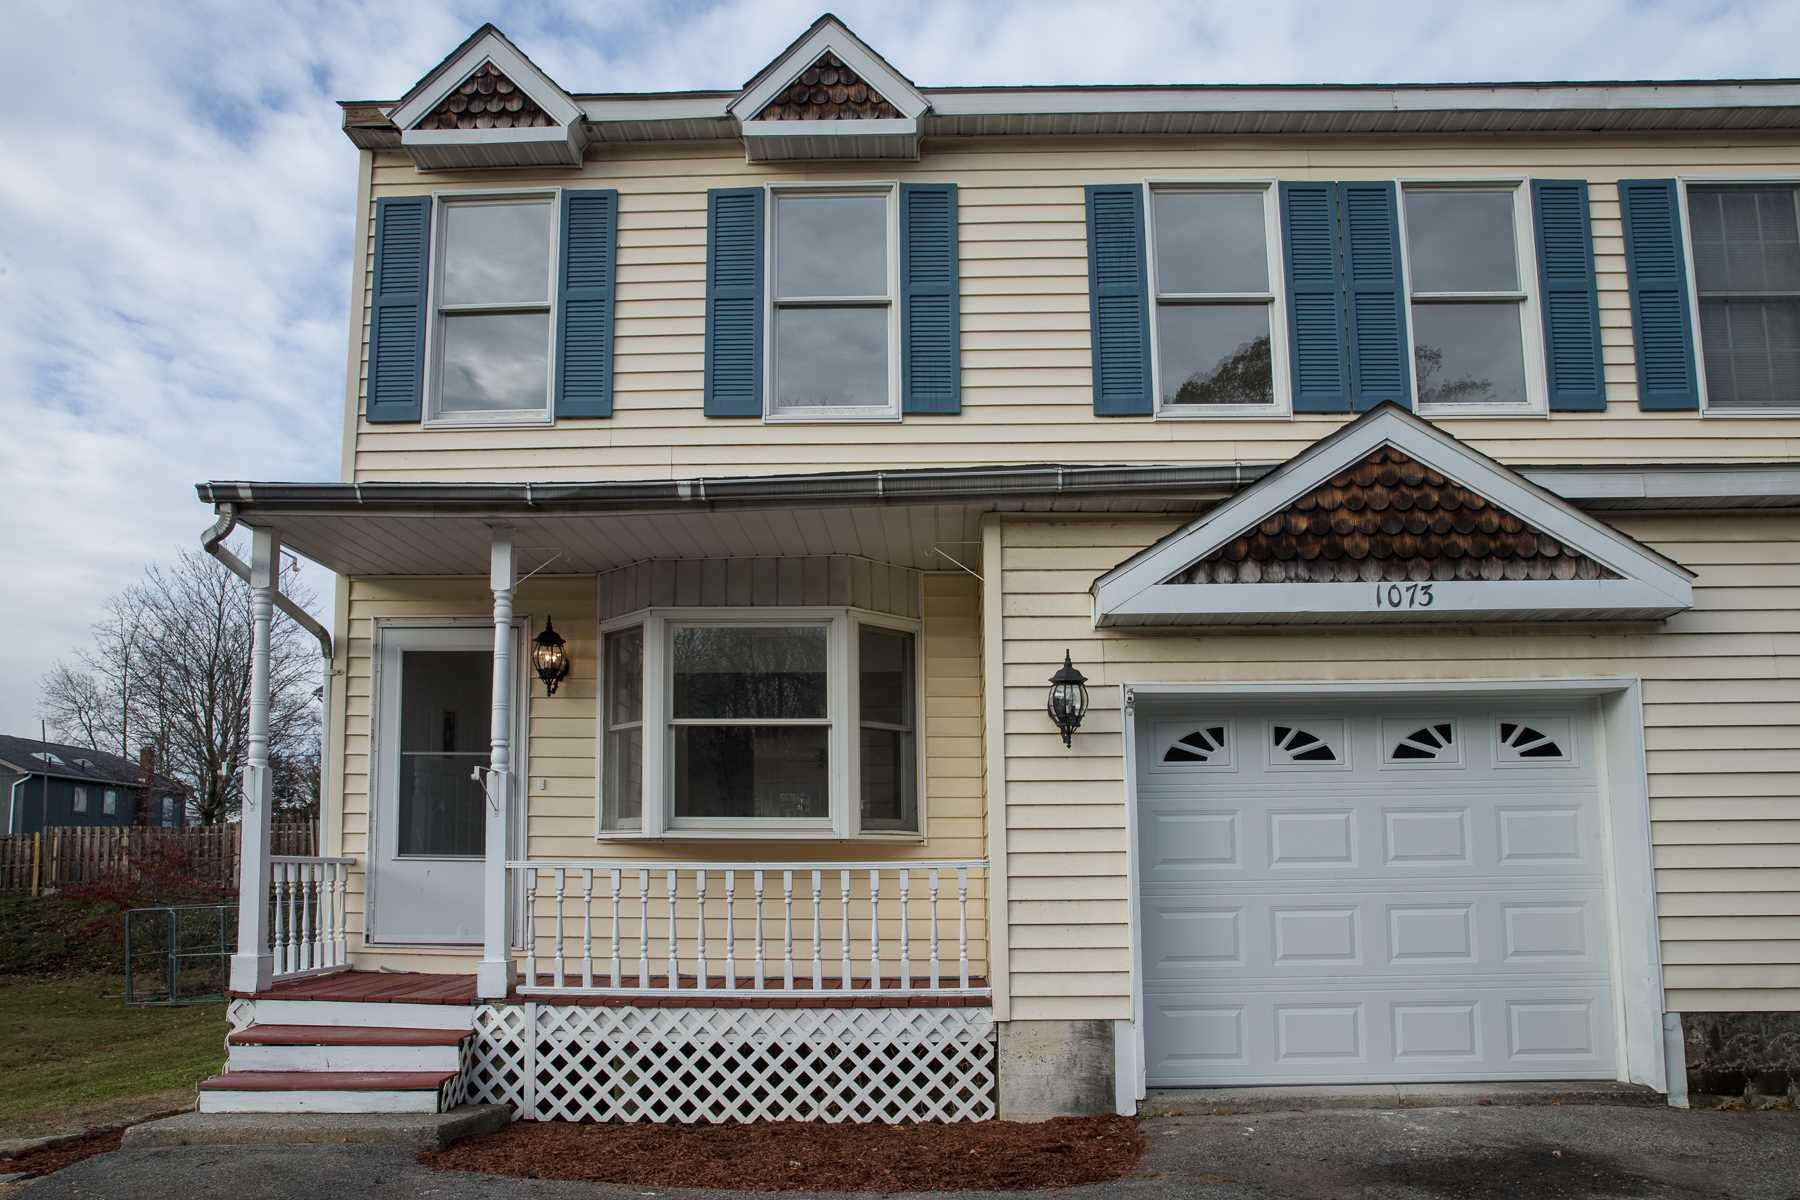 Single Family Home for Sale at 1073 WOLCOTT 1073 WOLCOTT Beacon, New York 12508 United States